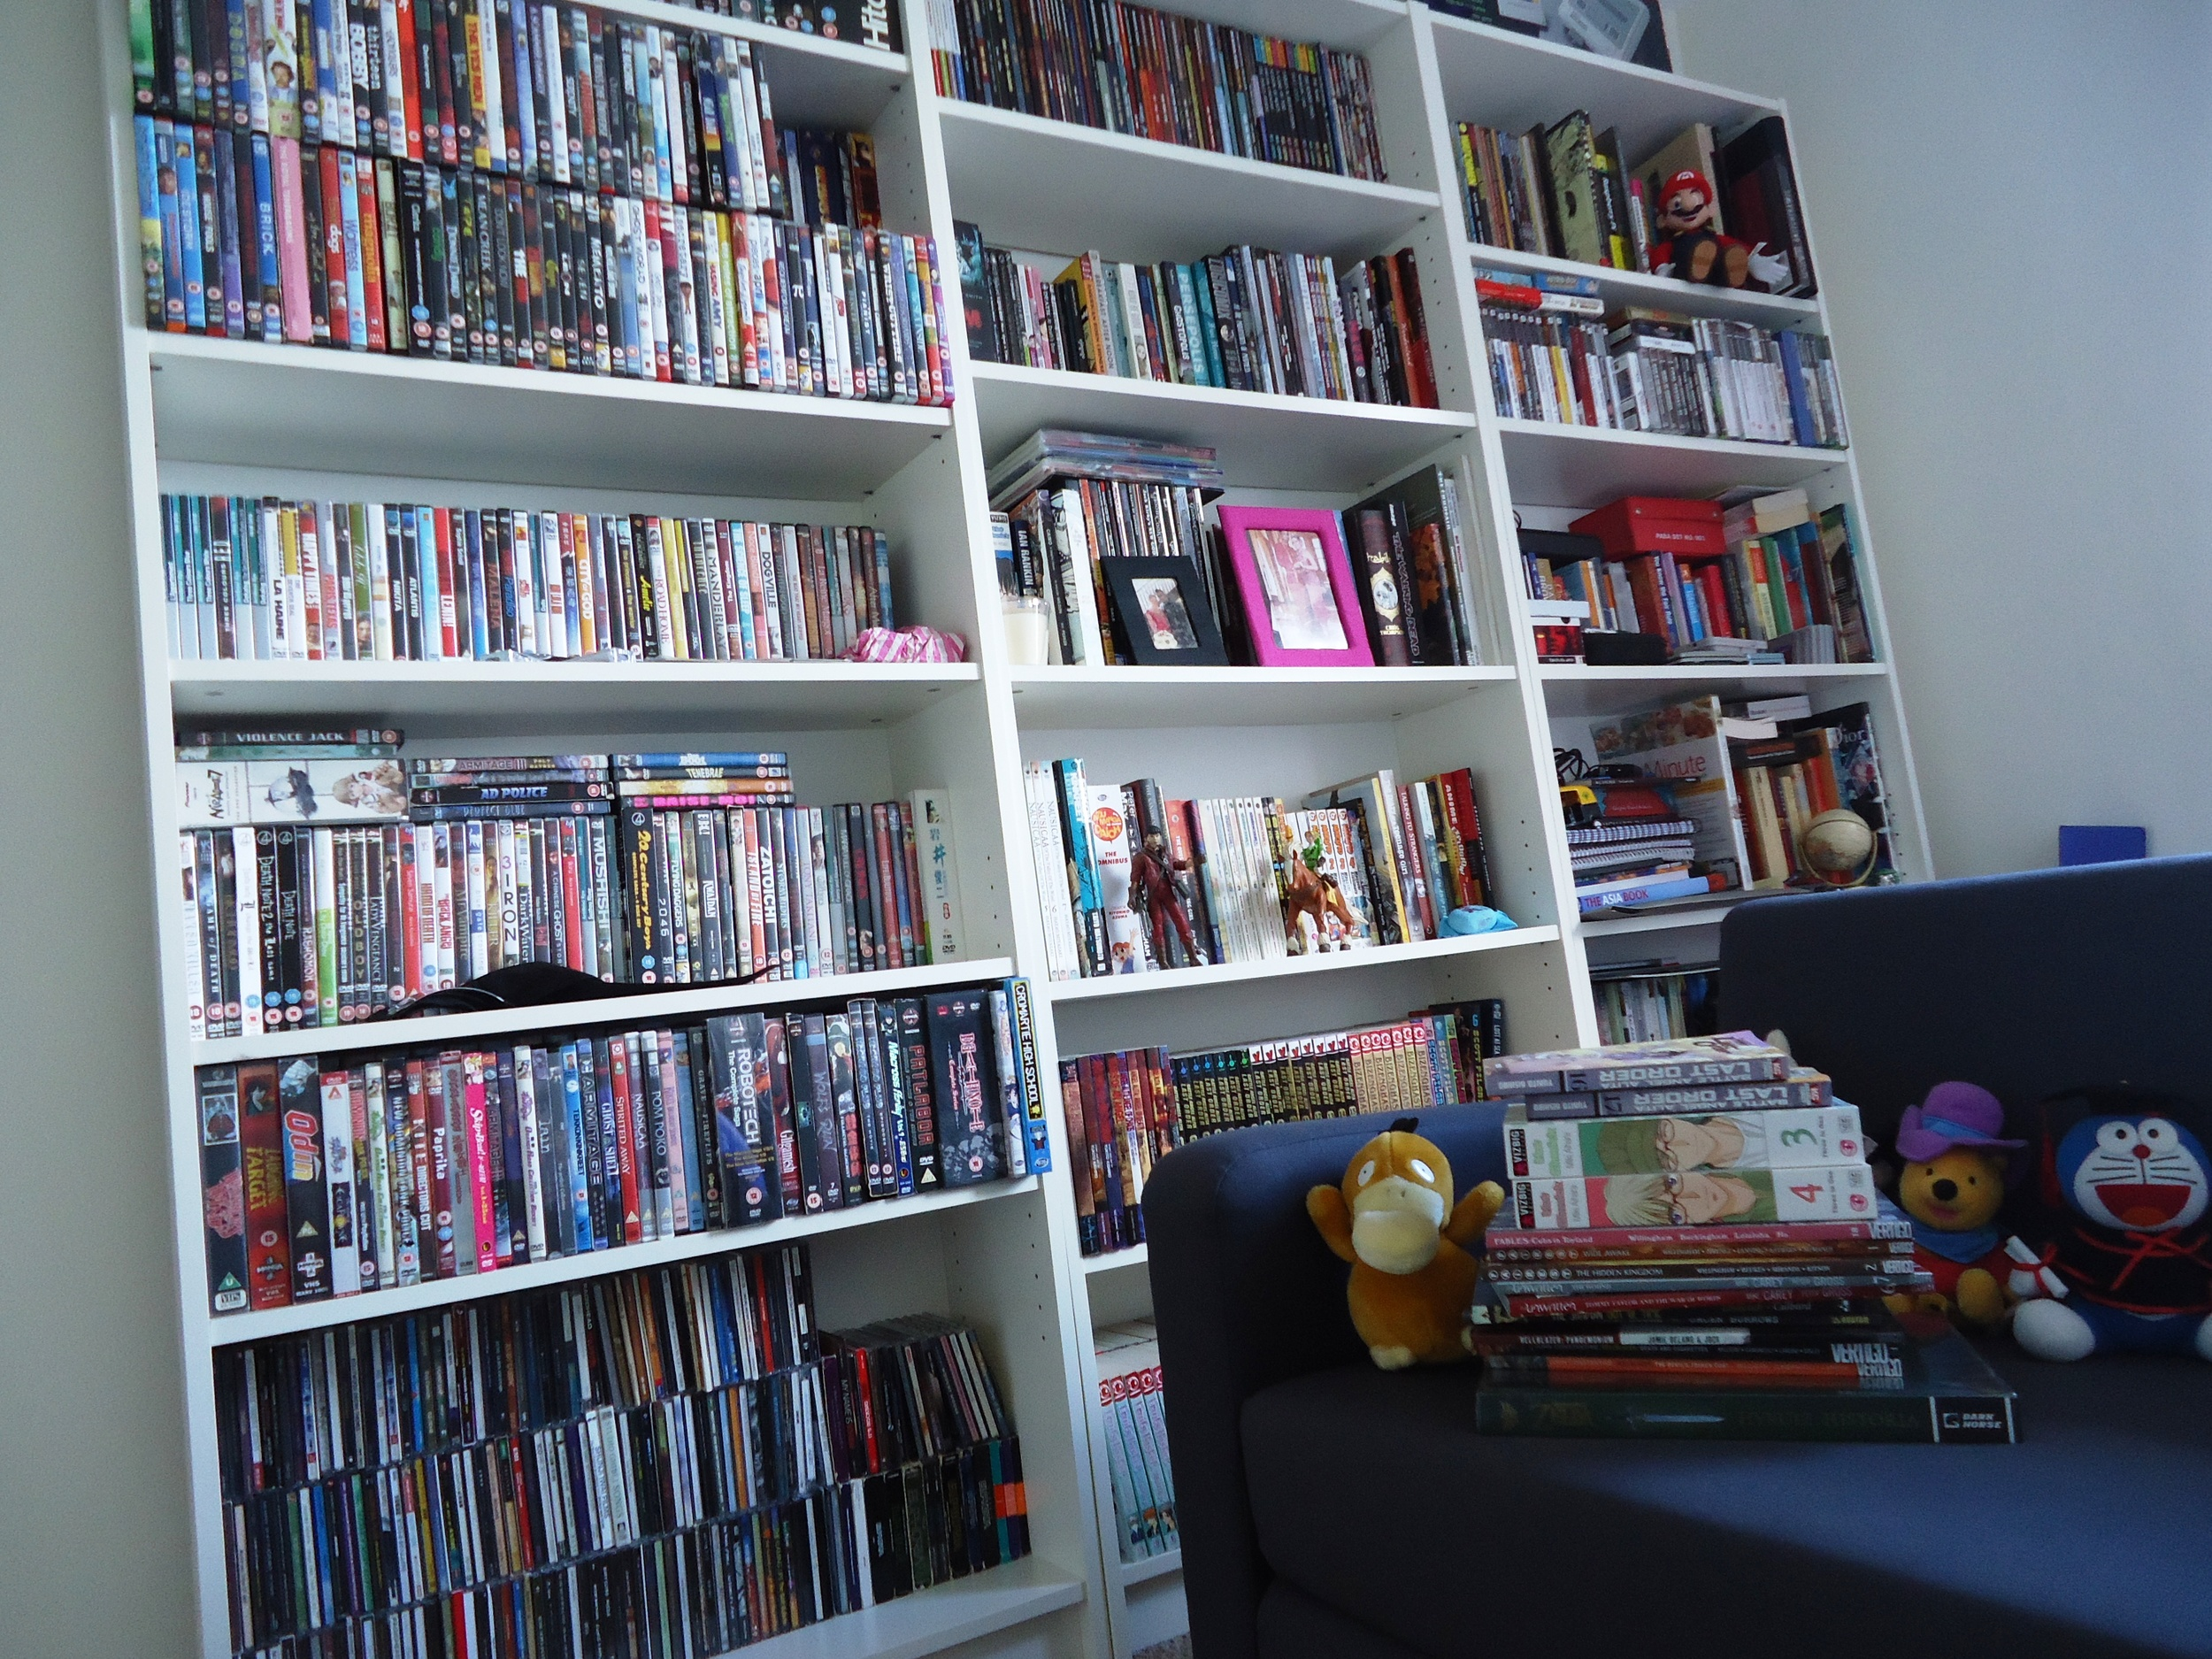 My second mancave was in a much smaller room which I was given as a favour from my wife. It was full of DVD's, CD's, graphic novels, models and plushies. It was great but felt a bit crammed!